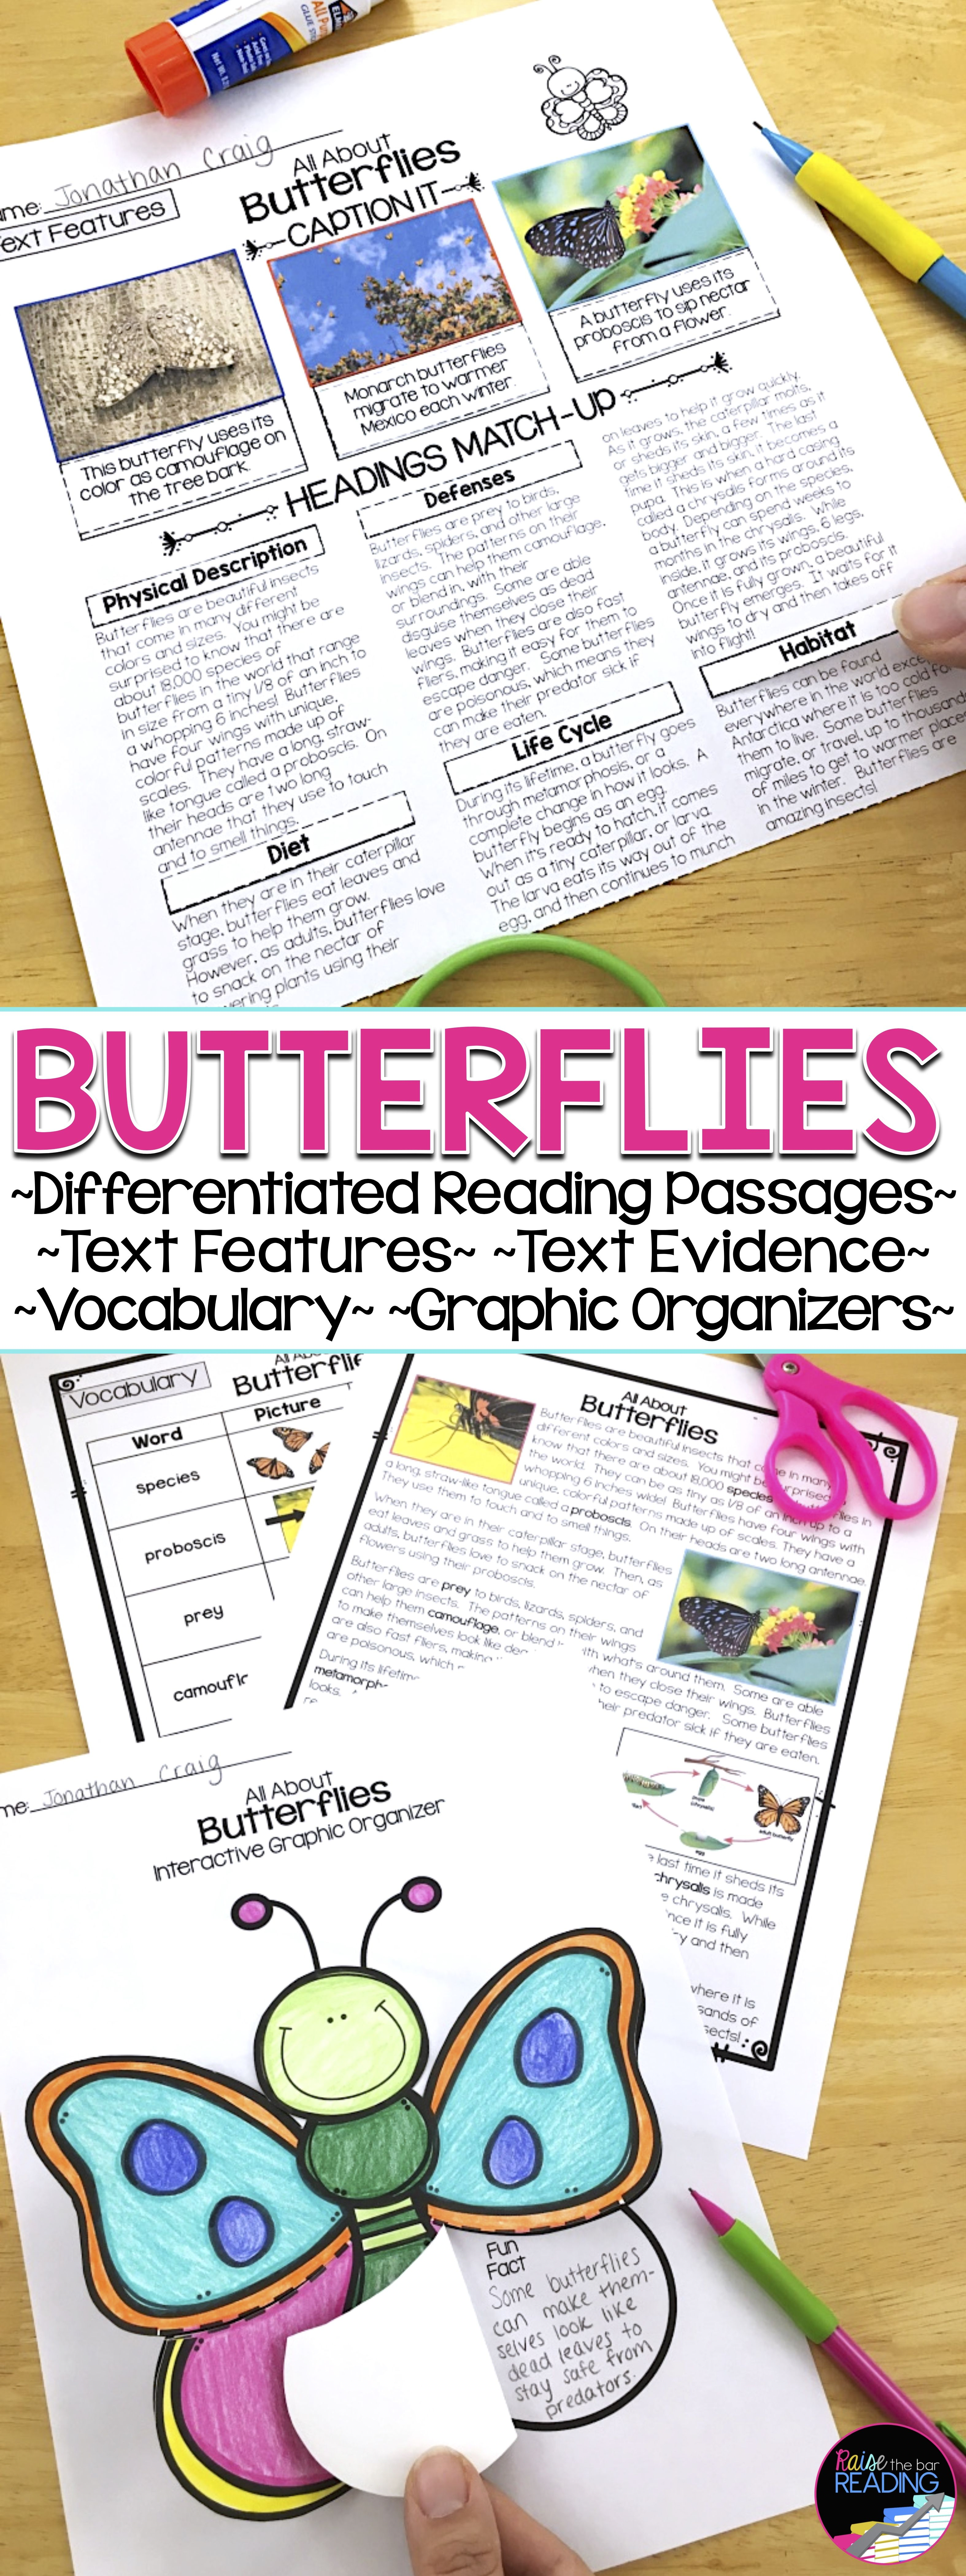 Butterflies Differentiated Reading Passages Grades 2 5 Perfect For Your Insects Unit Reading Passages Differentiated Reading Passages Differentiated Reading [ 8400 x 3149 Pixel ]